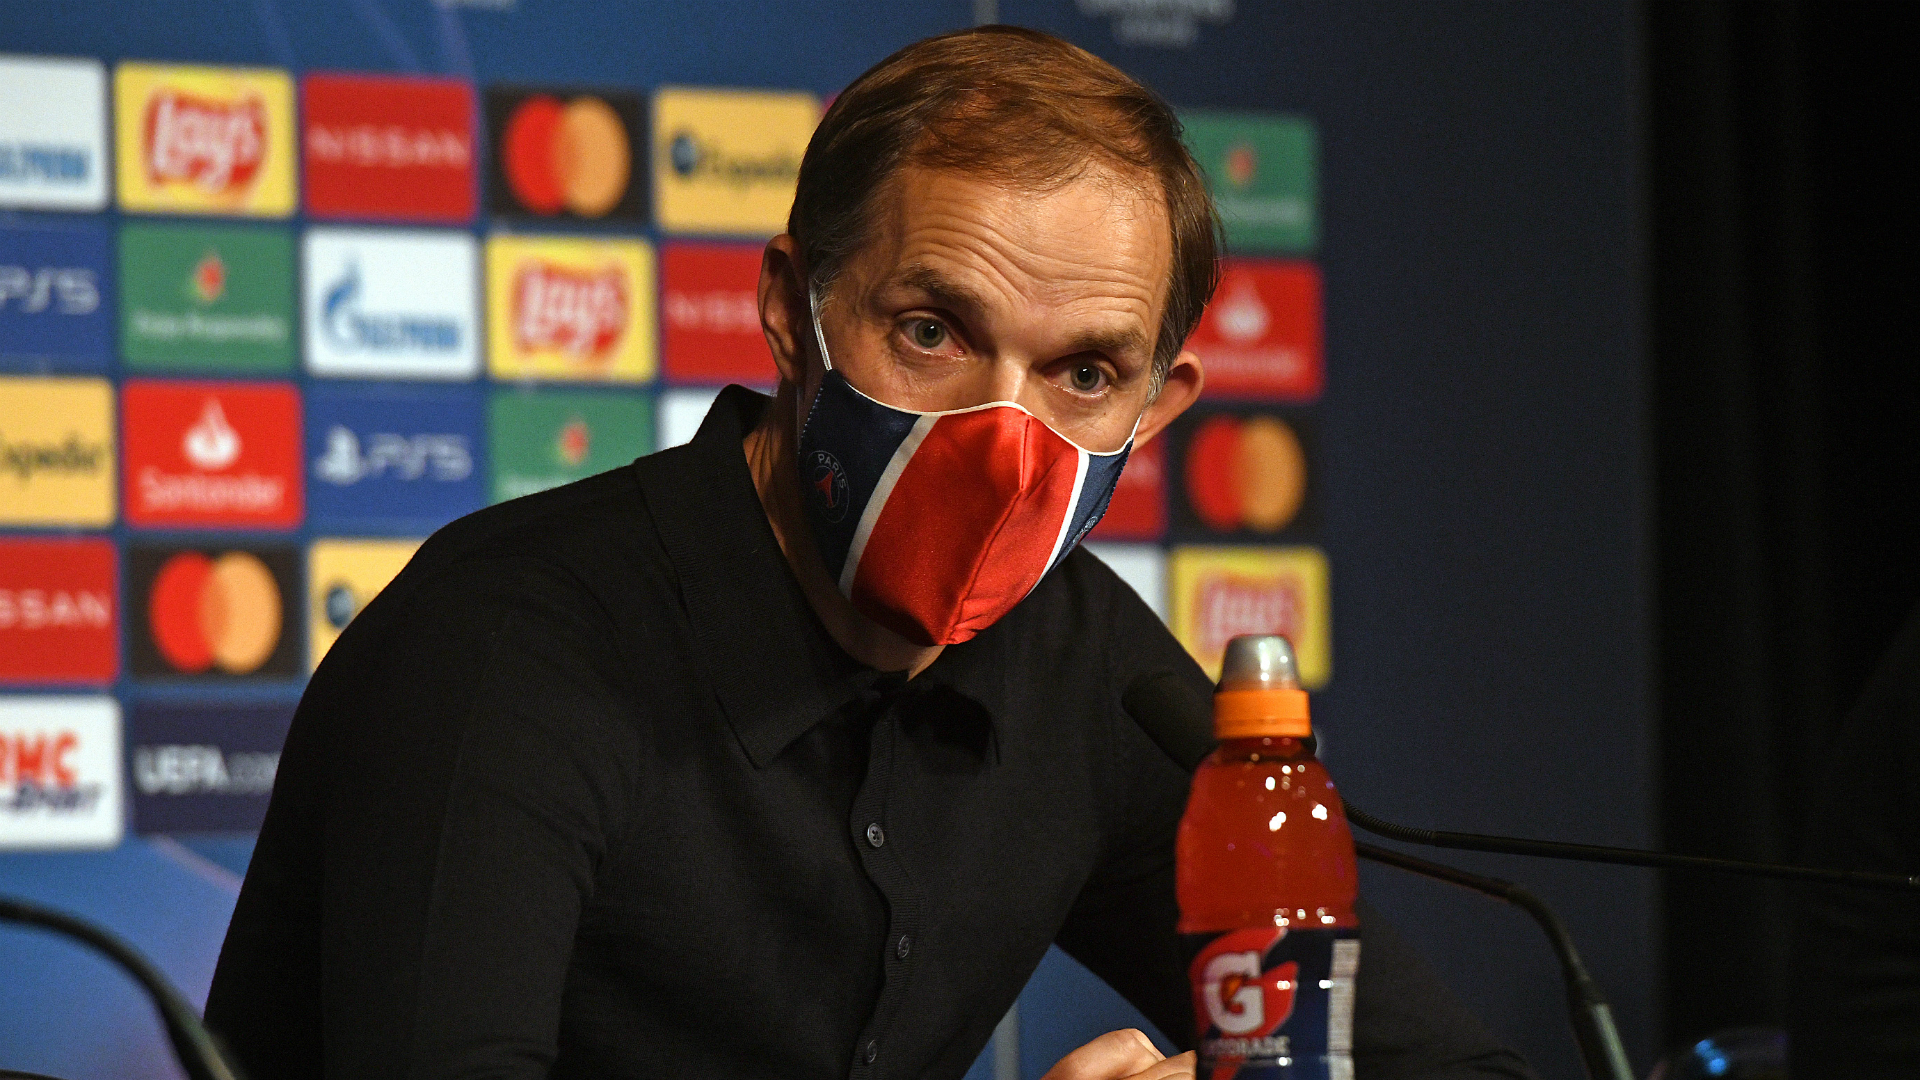 PSG boss Tuchel laments absence of fans: Very difficult playing behind closed doors